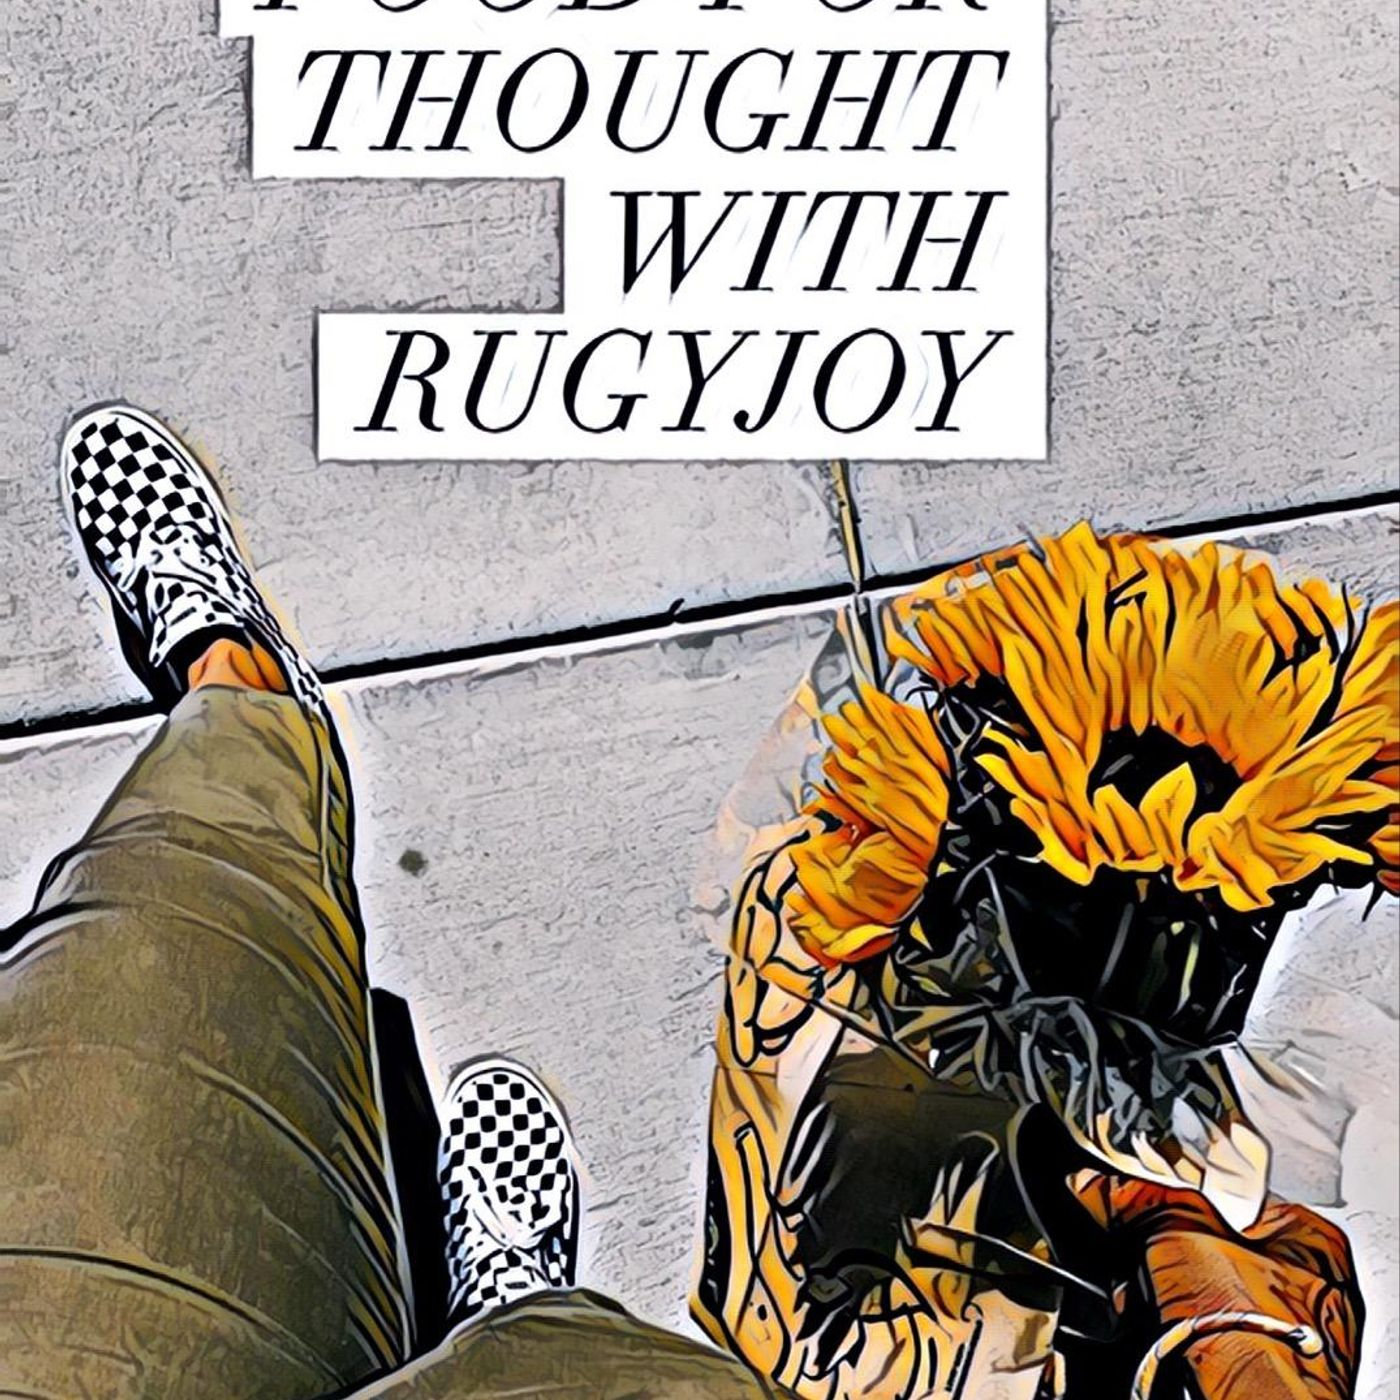 Food for thought with Rugy Joy Episode #1: Sickle Cell Warriors